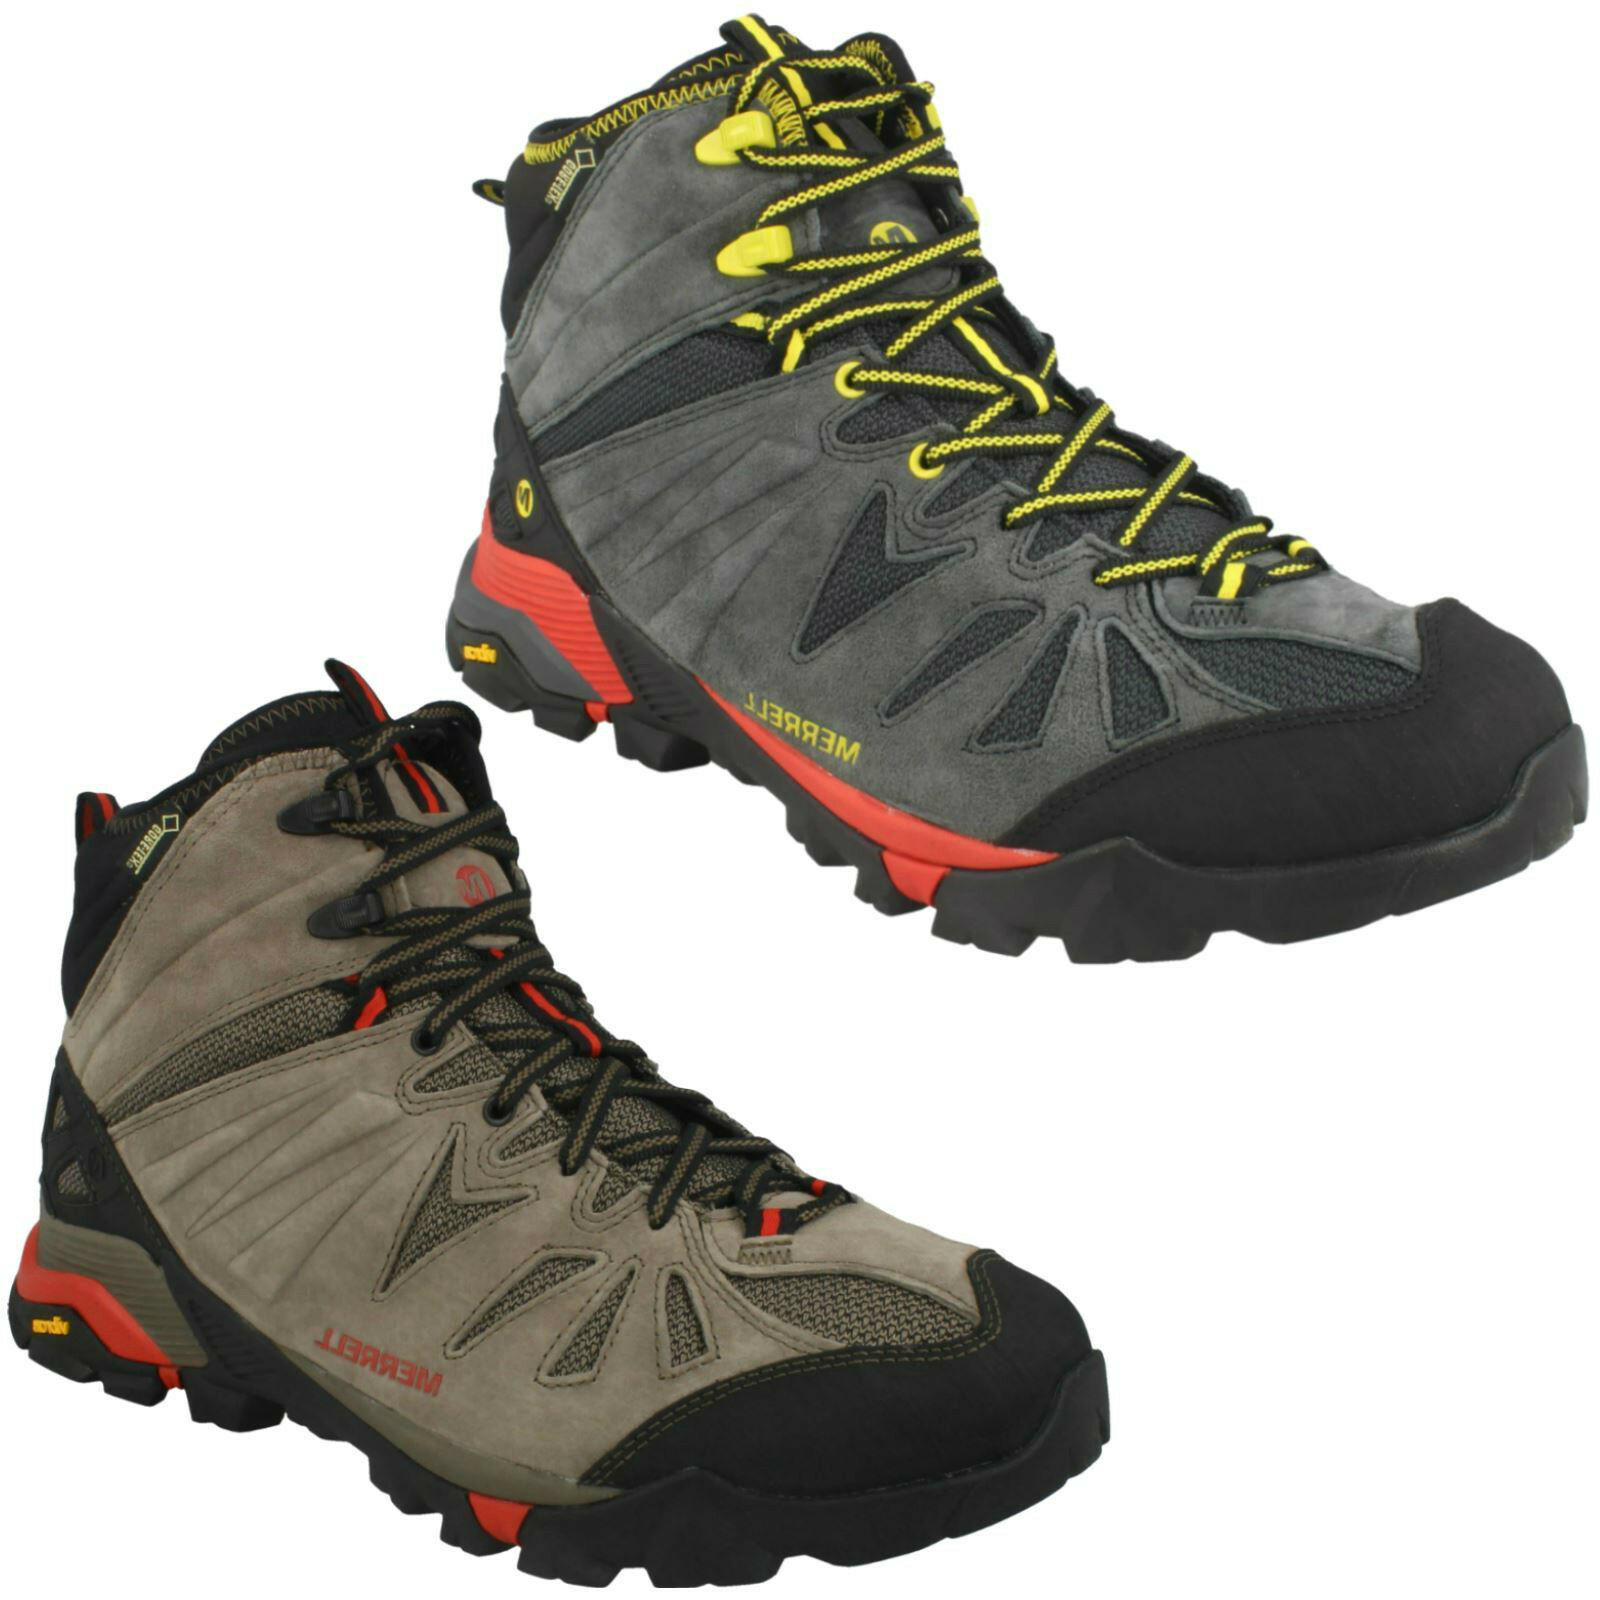 MENS MERRELL HIKING SMART OUTDOOR schuhe CAPRA MID GORE-TEX LACE UP WALKING Stiefel